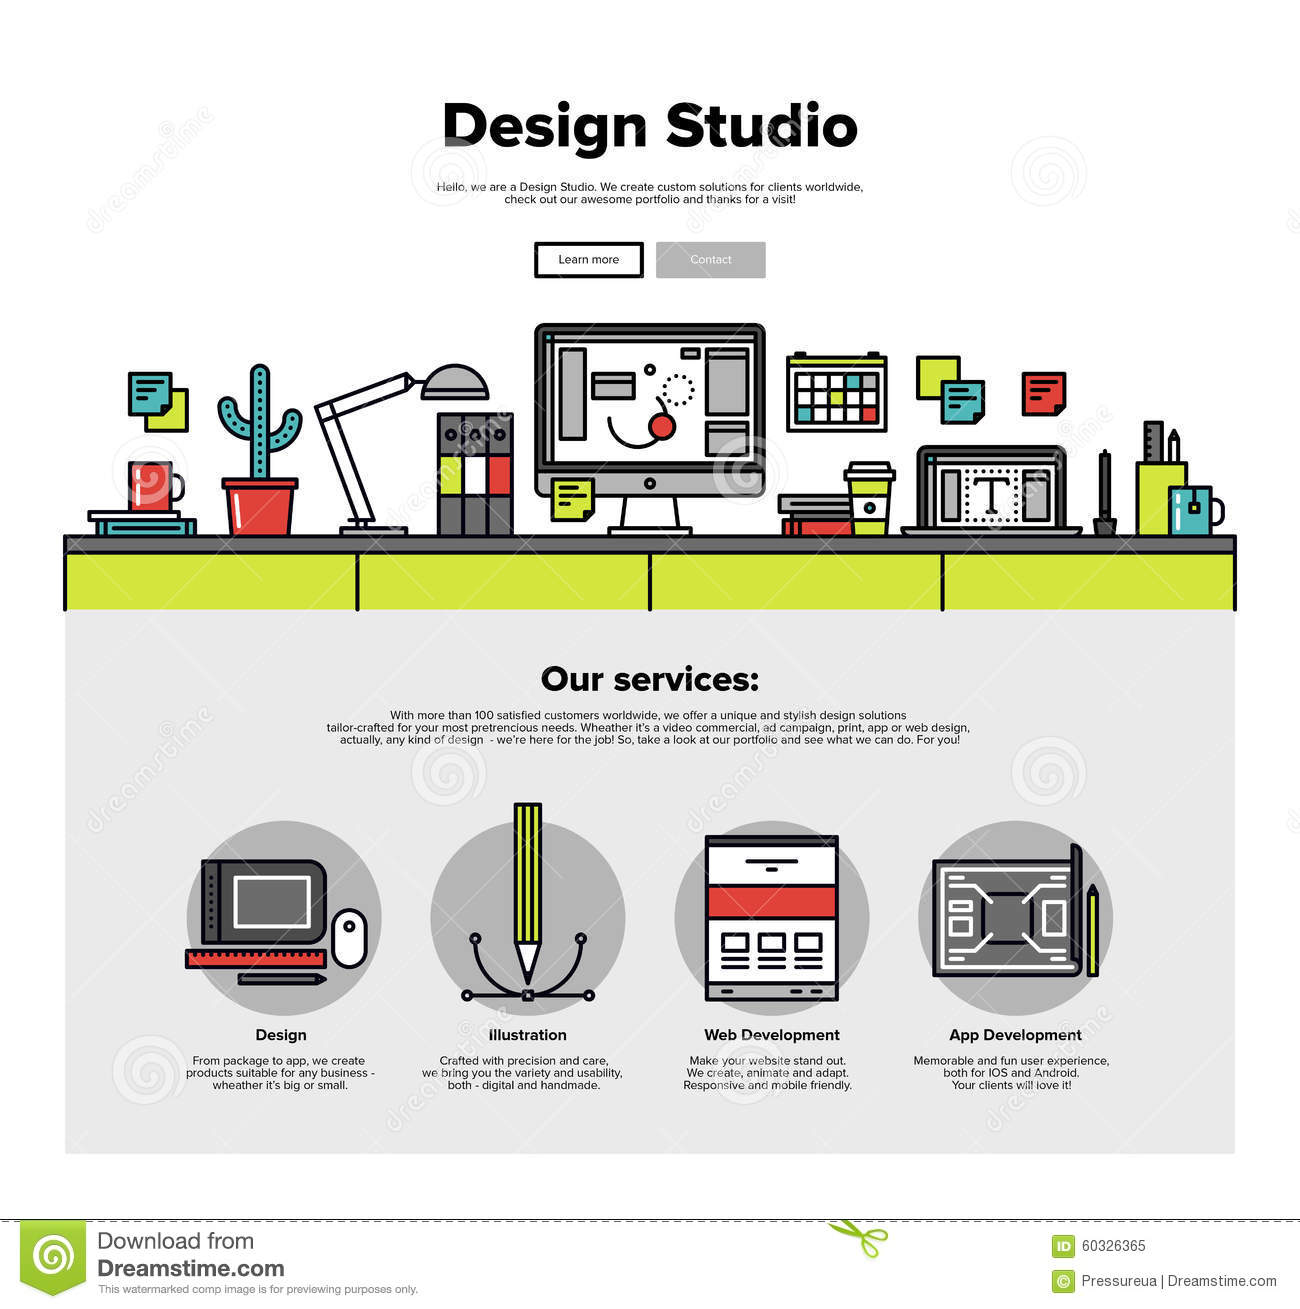 Design Studio Flat Line Web Graphics Stock Vector - Image: 60326365: http://www.dreamstime.com/stock-illustration-design-studio-flat-line-web-graphics-one-page-template-thin-icons-agency-services-digital-develop-apps-image60326365